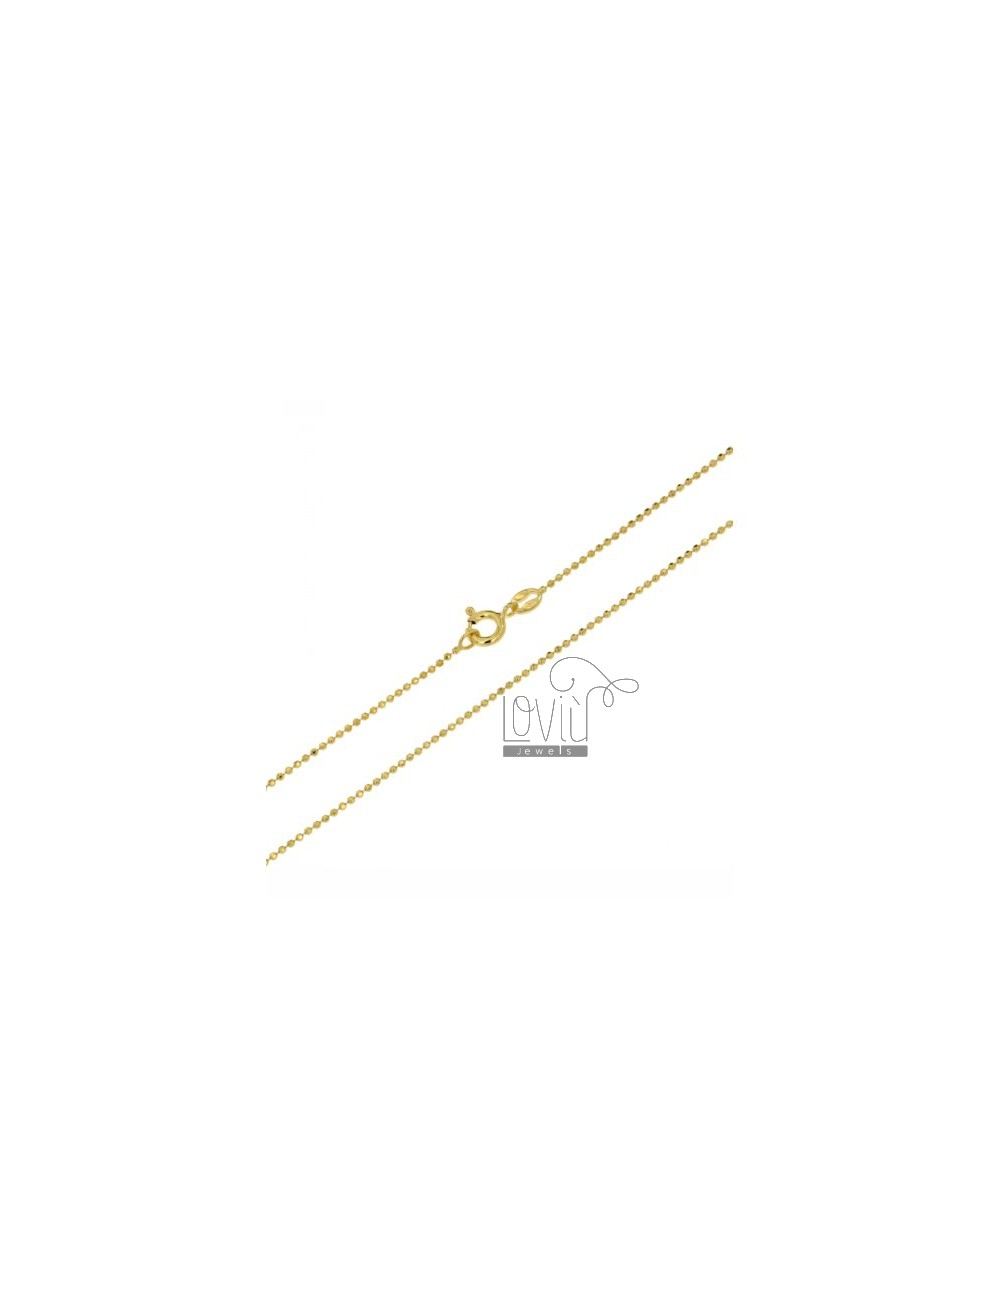 BALL CHAIN &8203&82031.2 MM YELLOW GOLD PLATED faceted CM 60 IN TIT AG 925